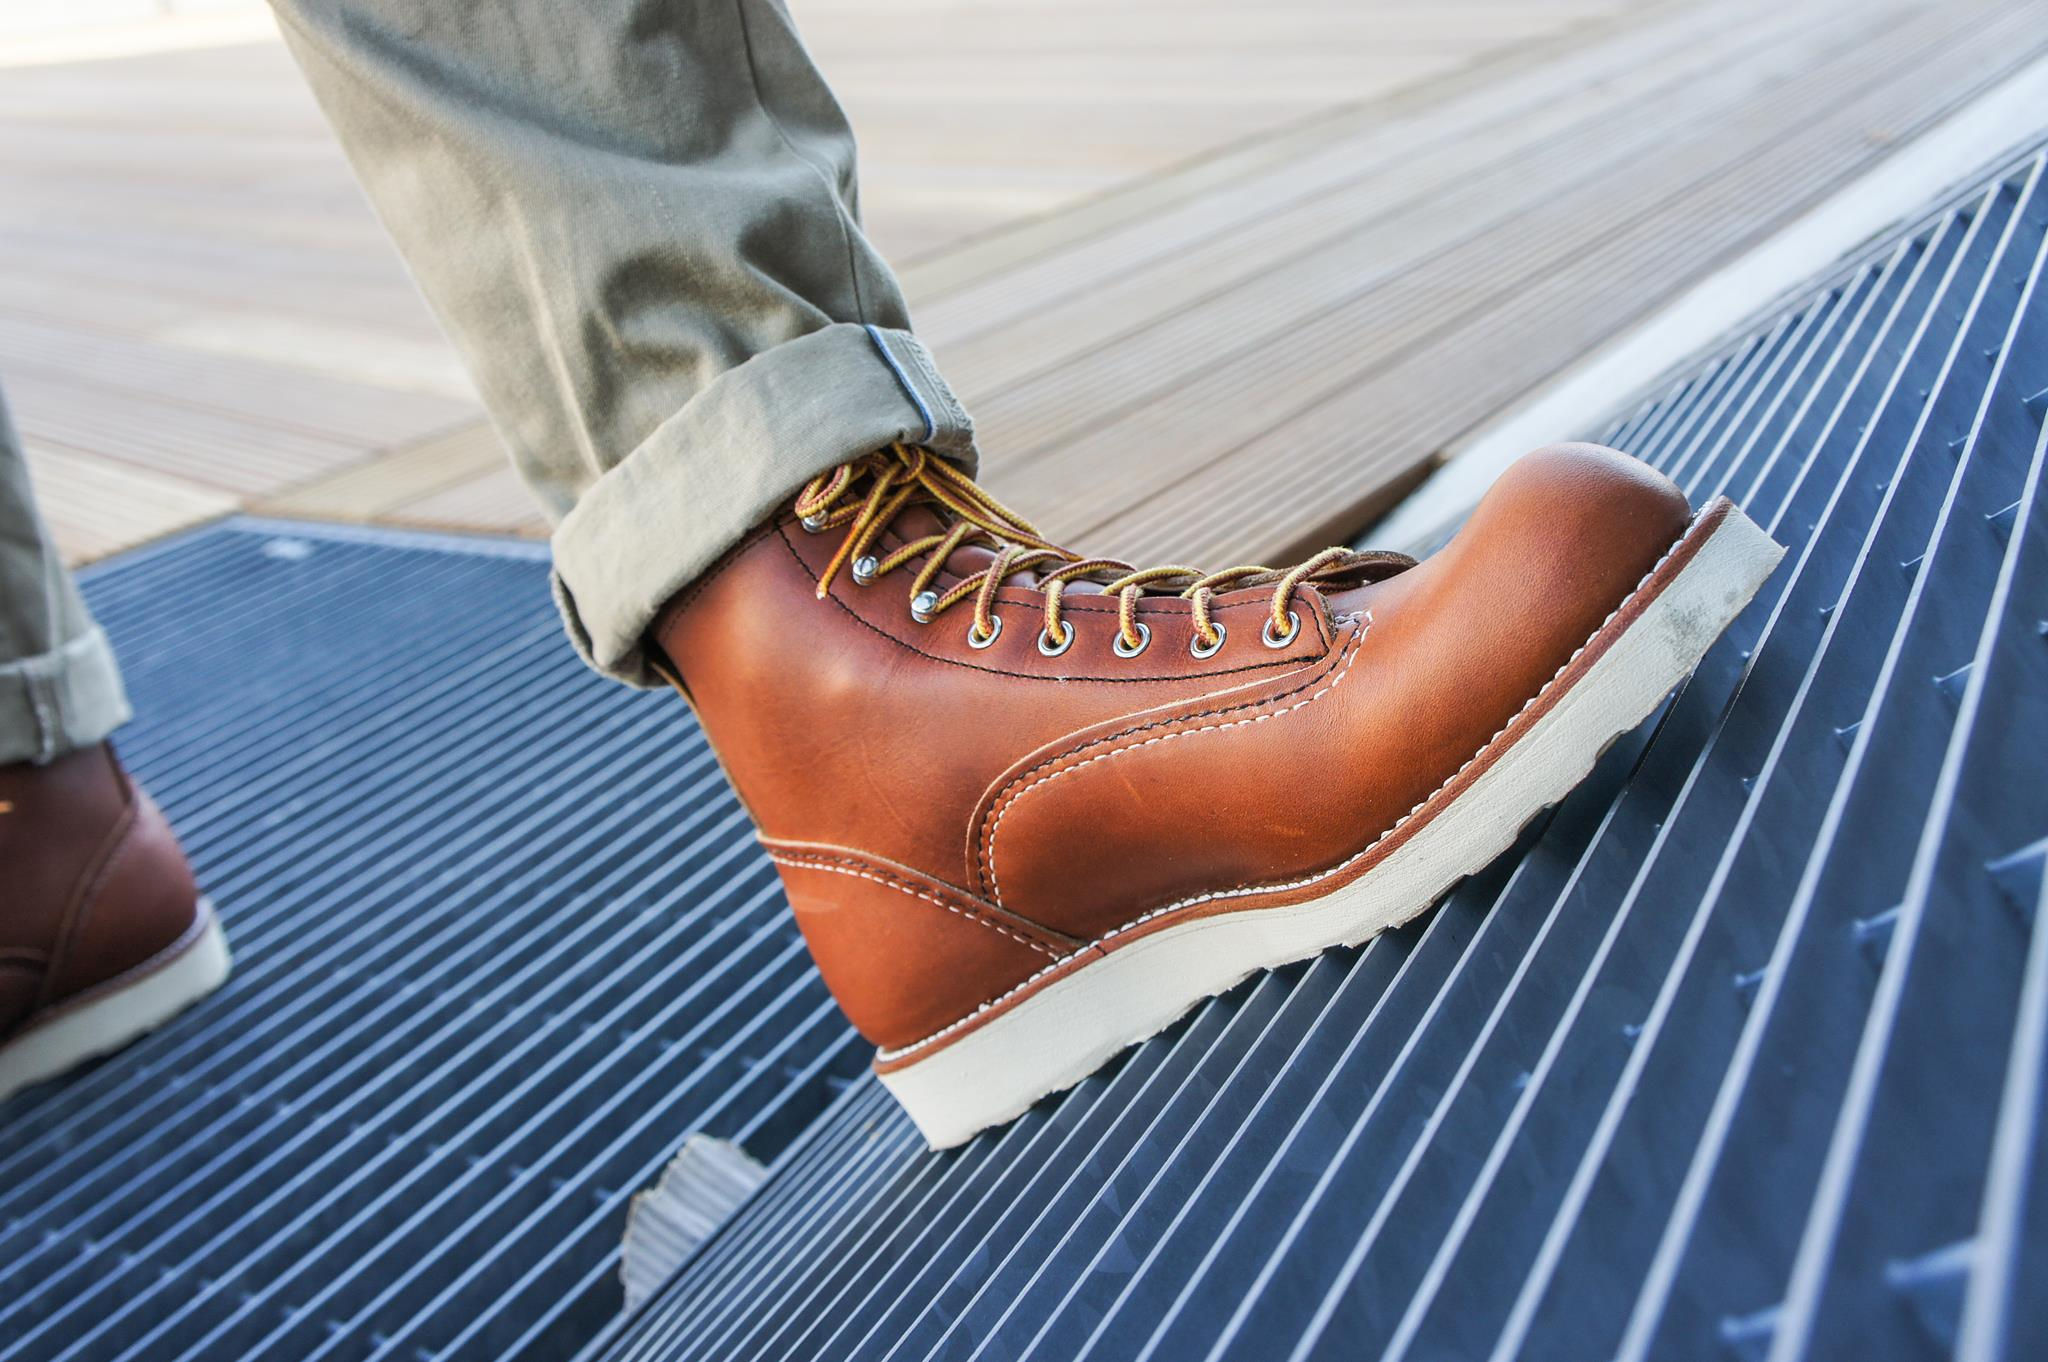 abe8b001aea 21 Best Roofing Shoes of 2019: Professional & Budget Picks [updated]